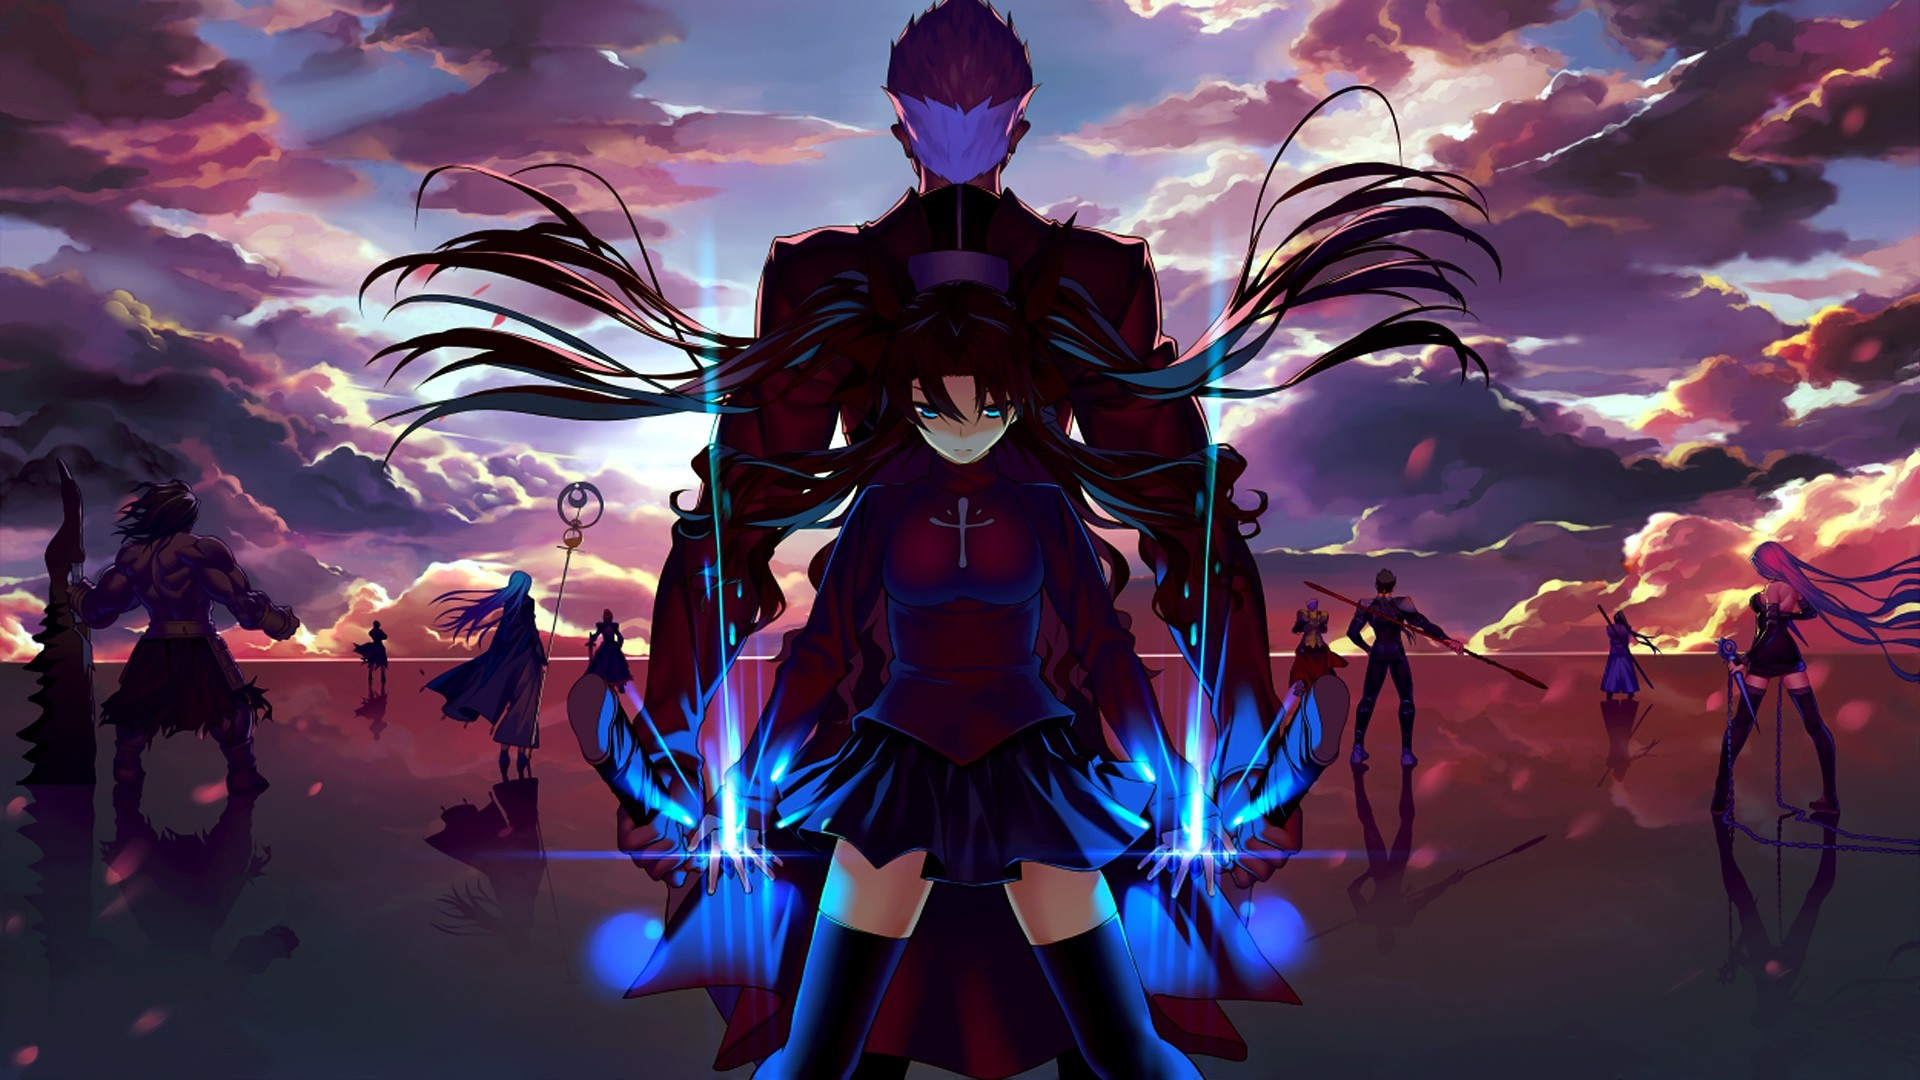 … Fate Stay Night Lancer Wallpapers Anime Wallpaper Arunnath Fate Stay  Night Wallpaper 2017